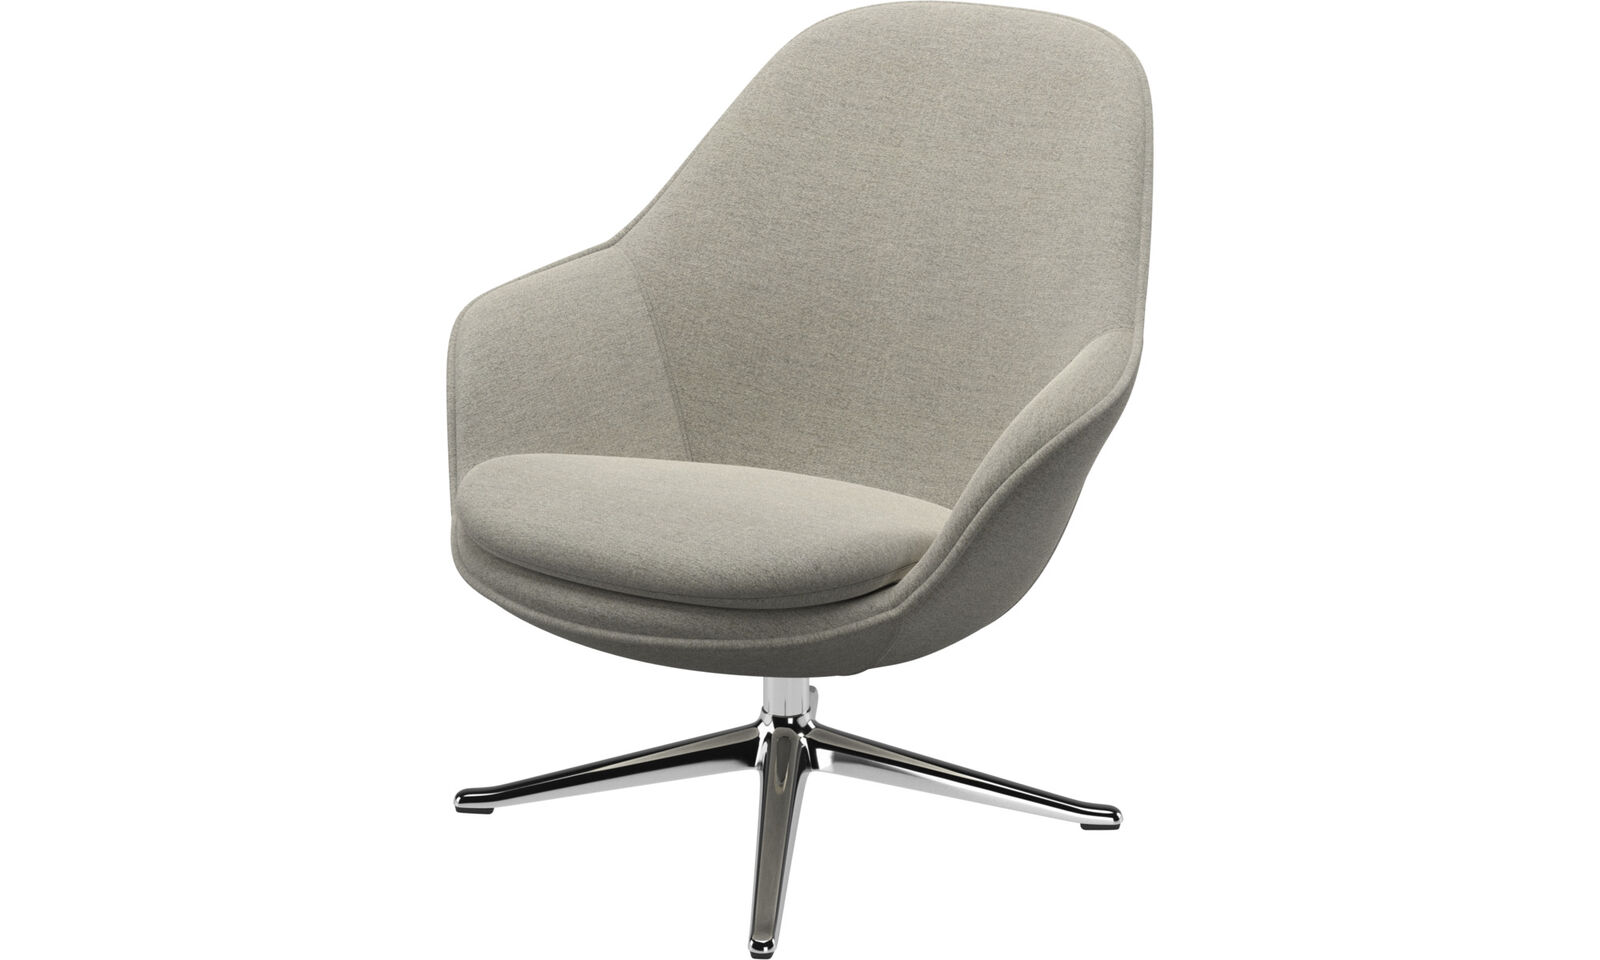 Adelaide living chair with footstool